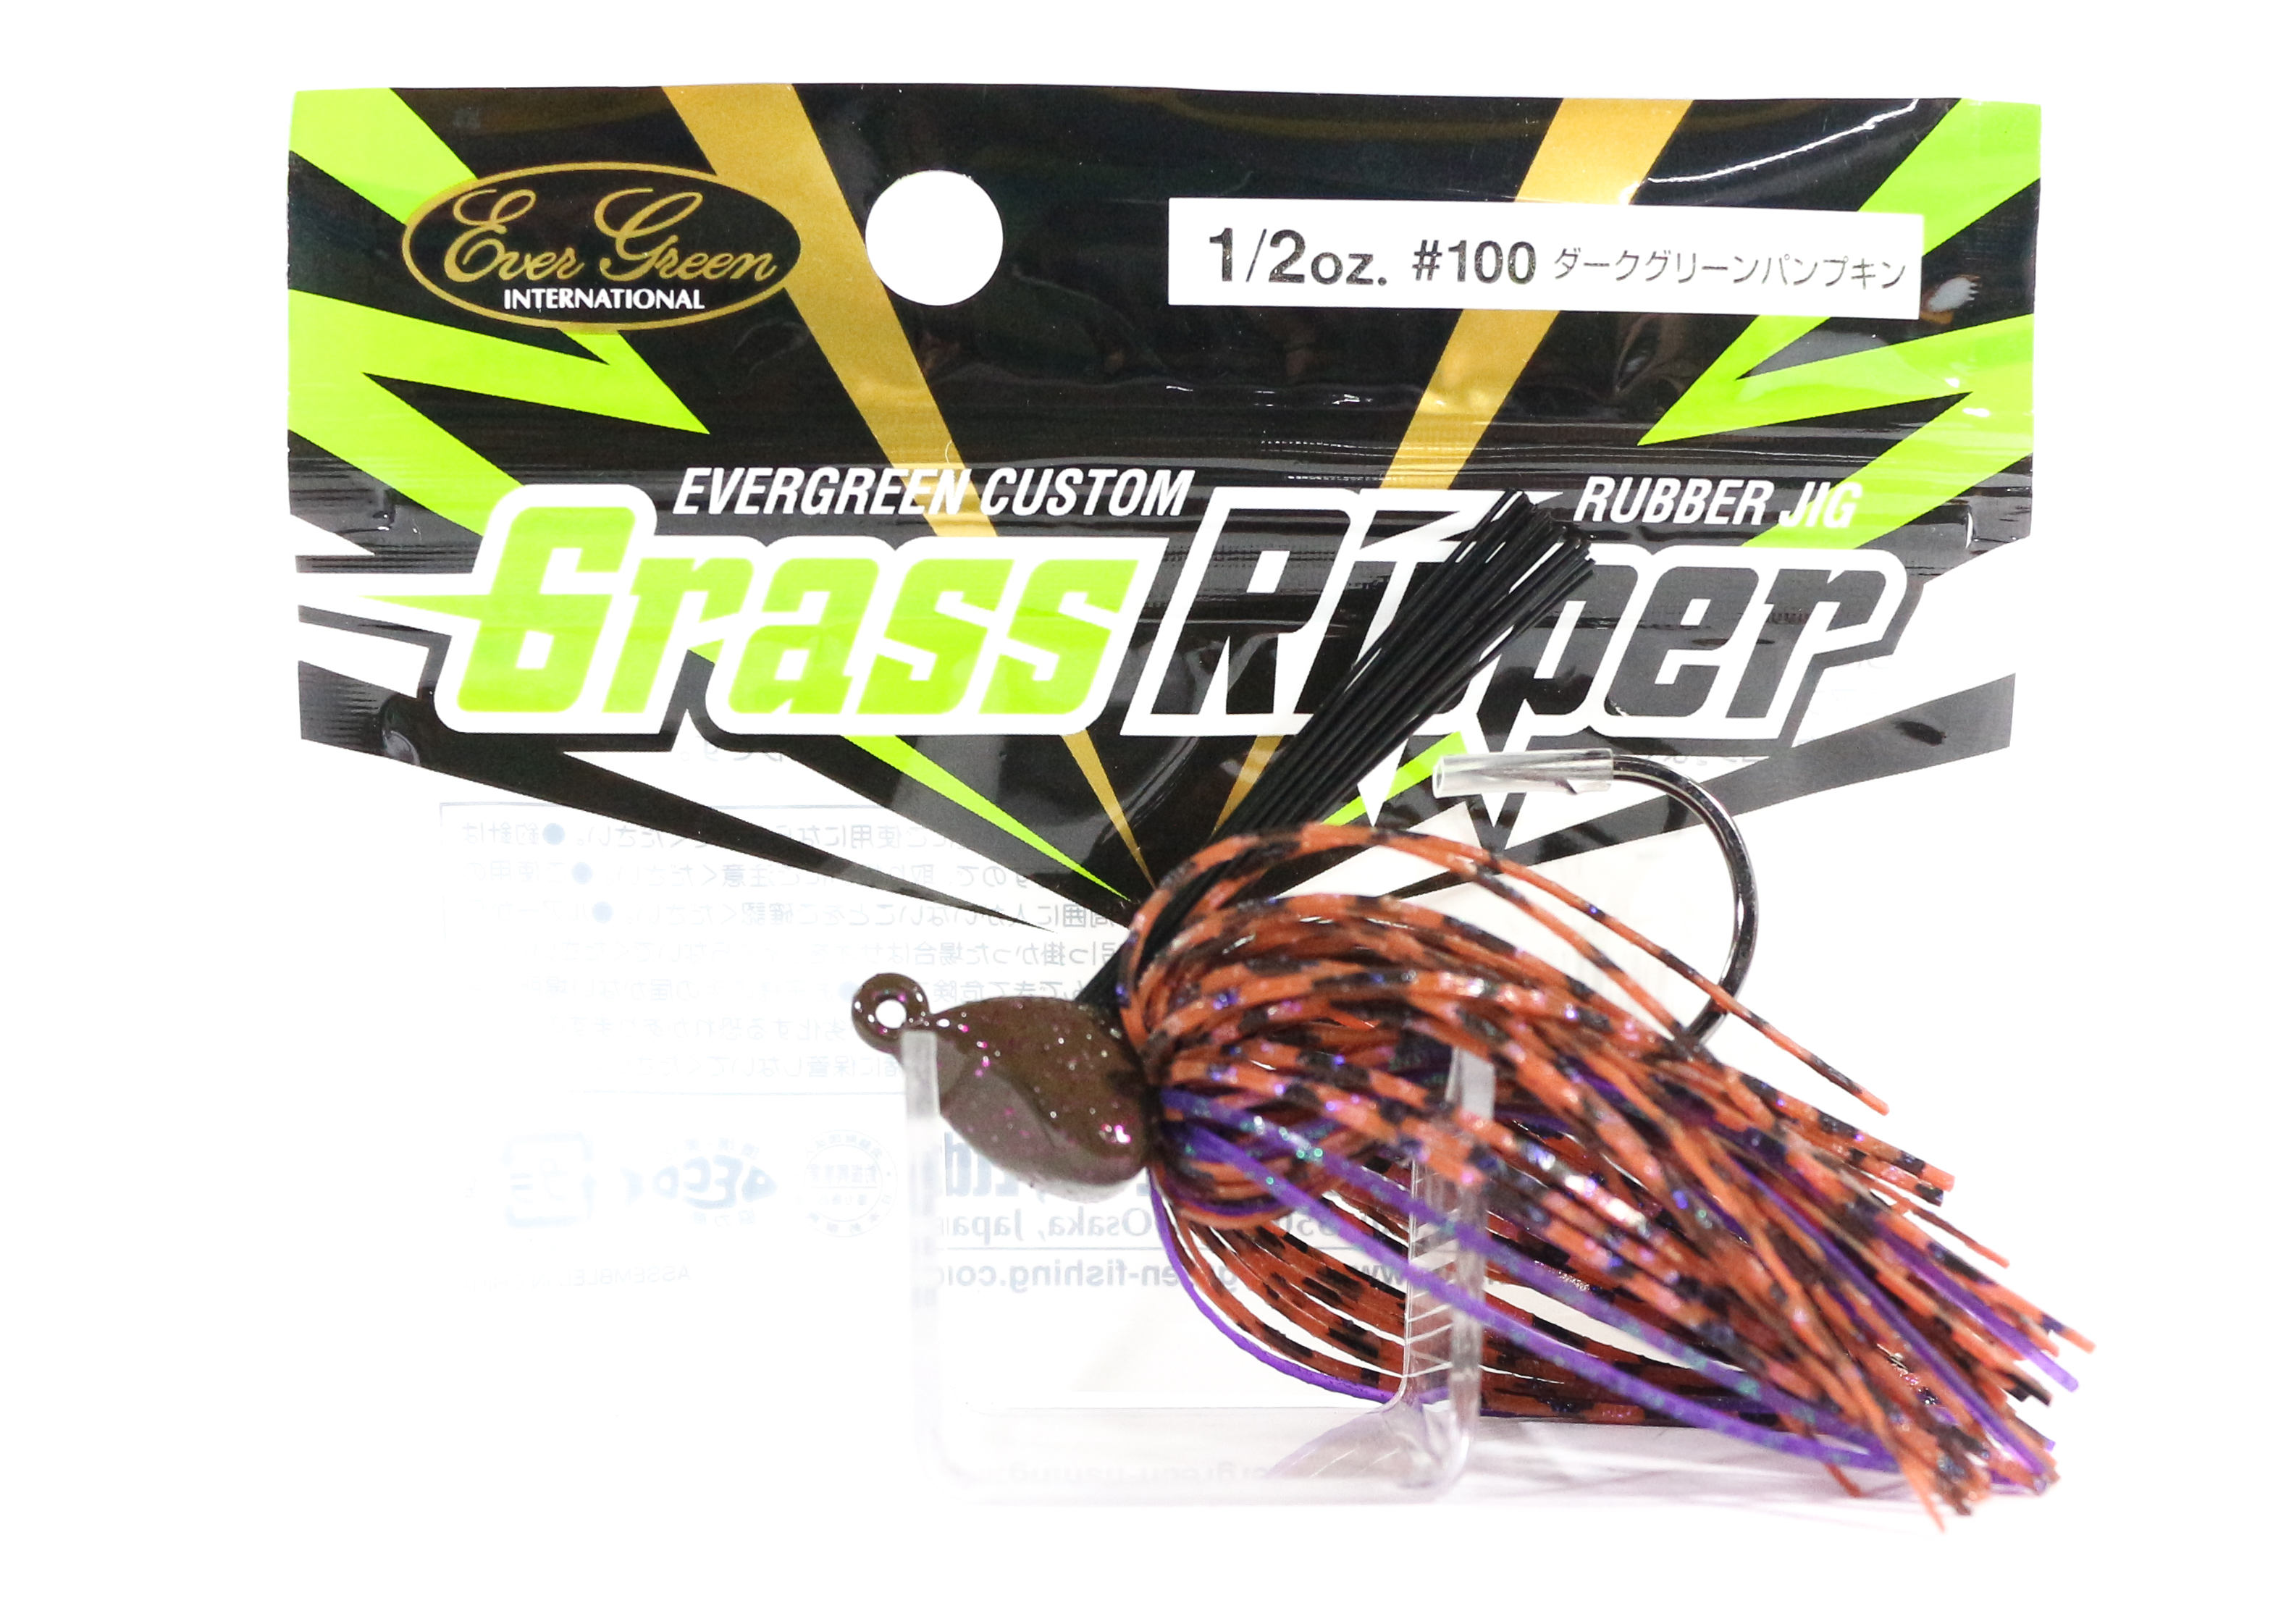 Evergreen Grass Ripper Casting Jig 3/8 oz 104 (4117)